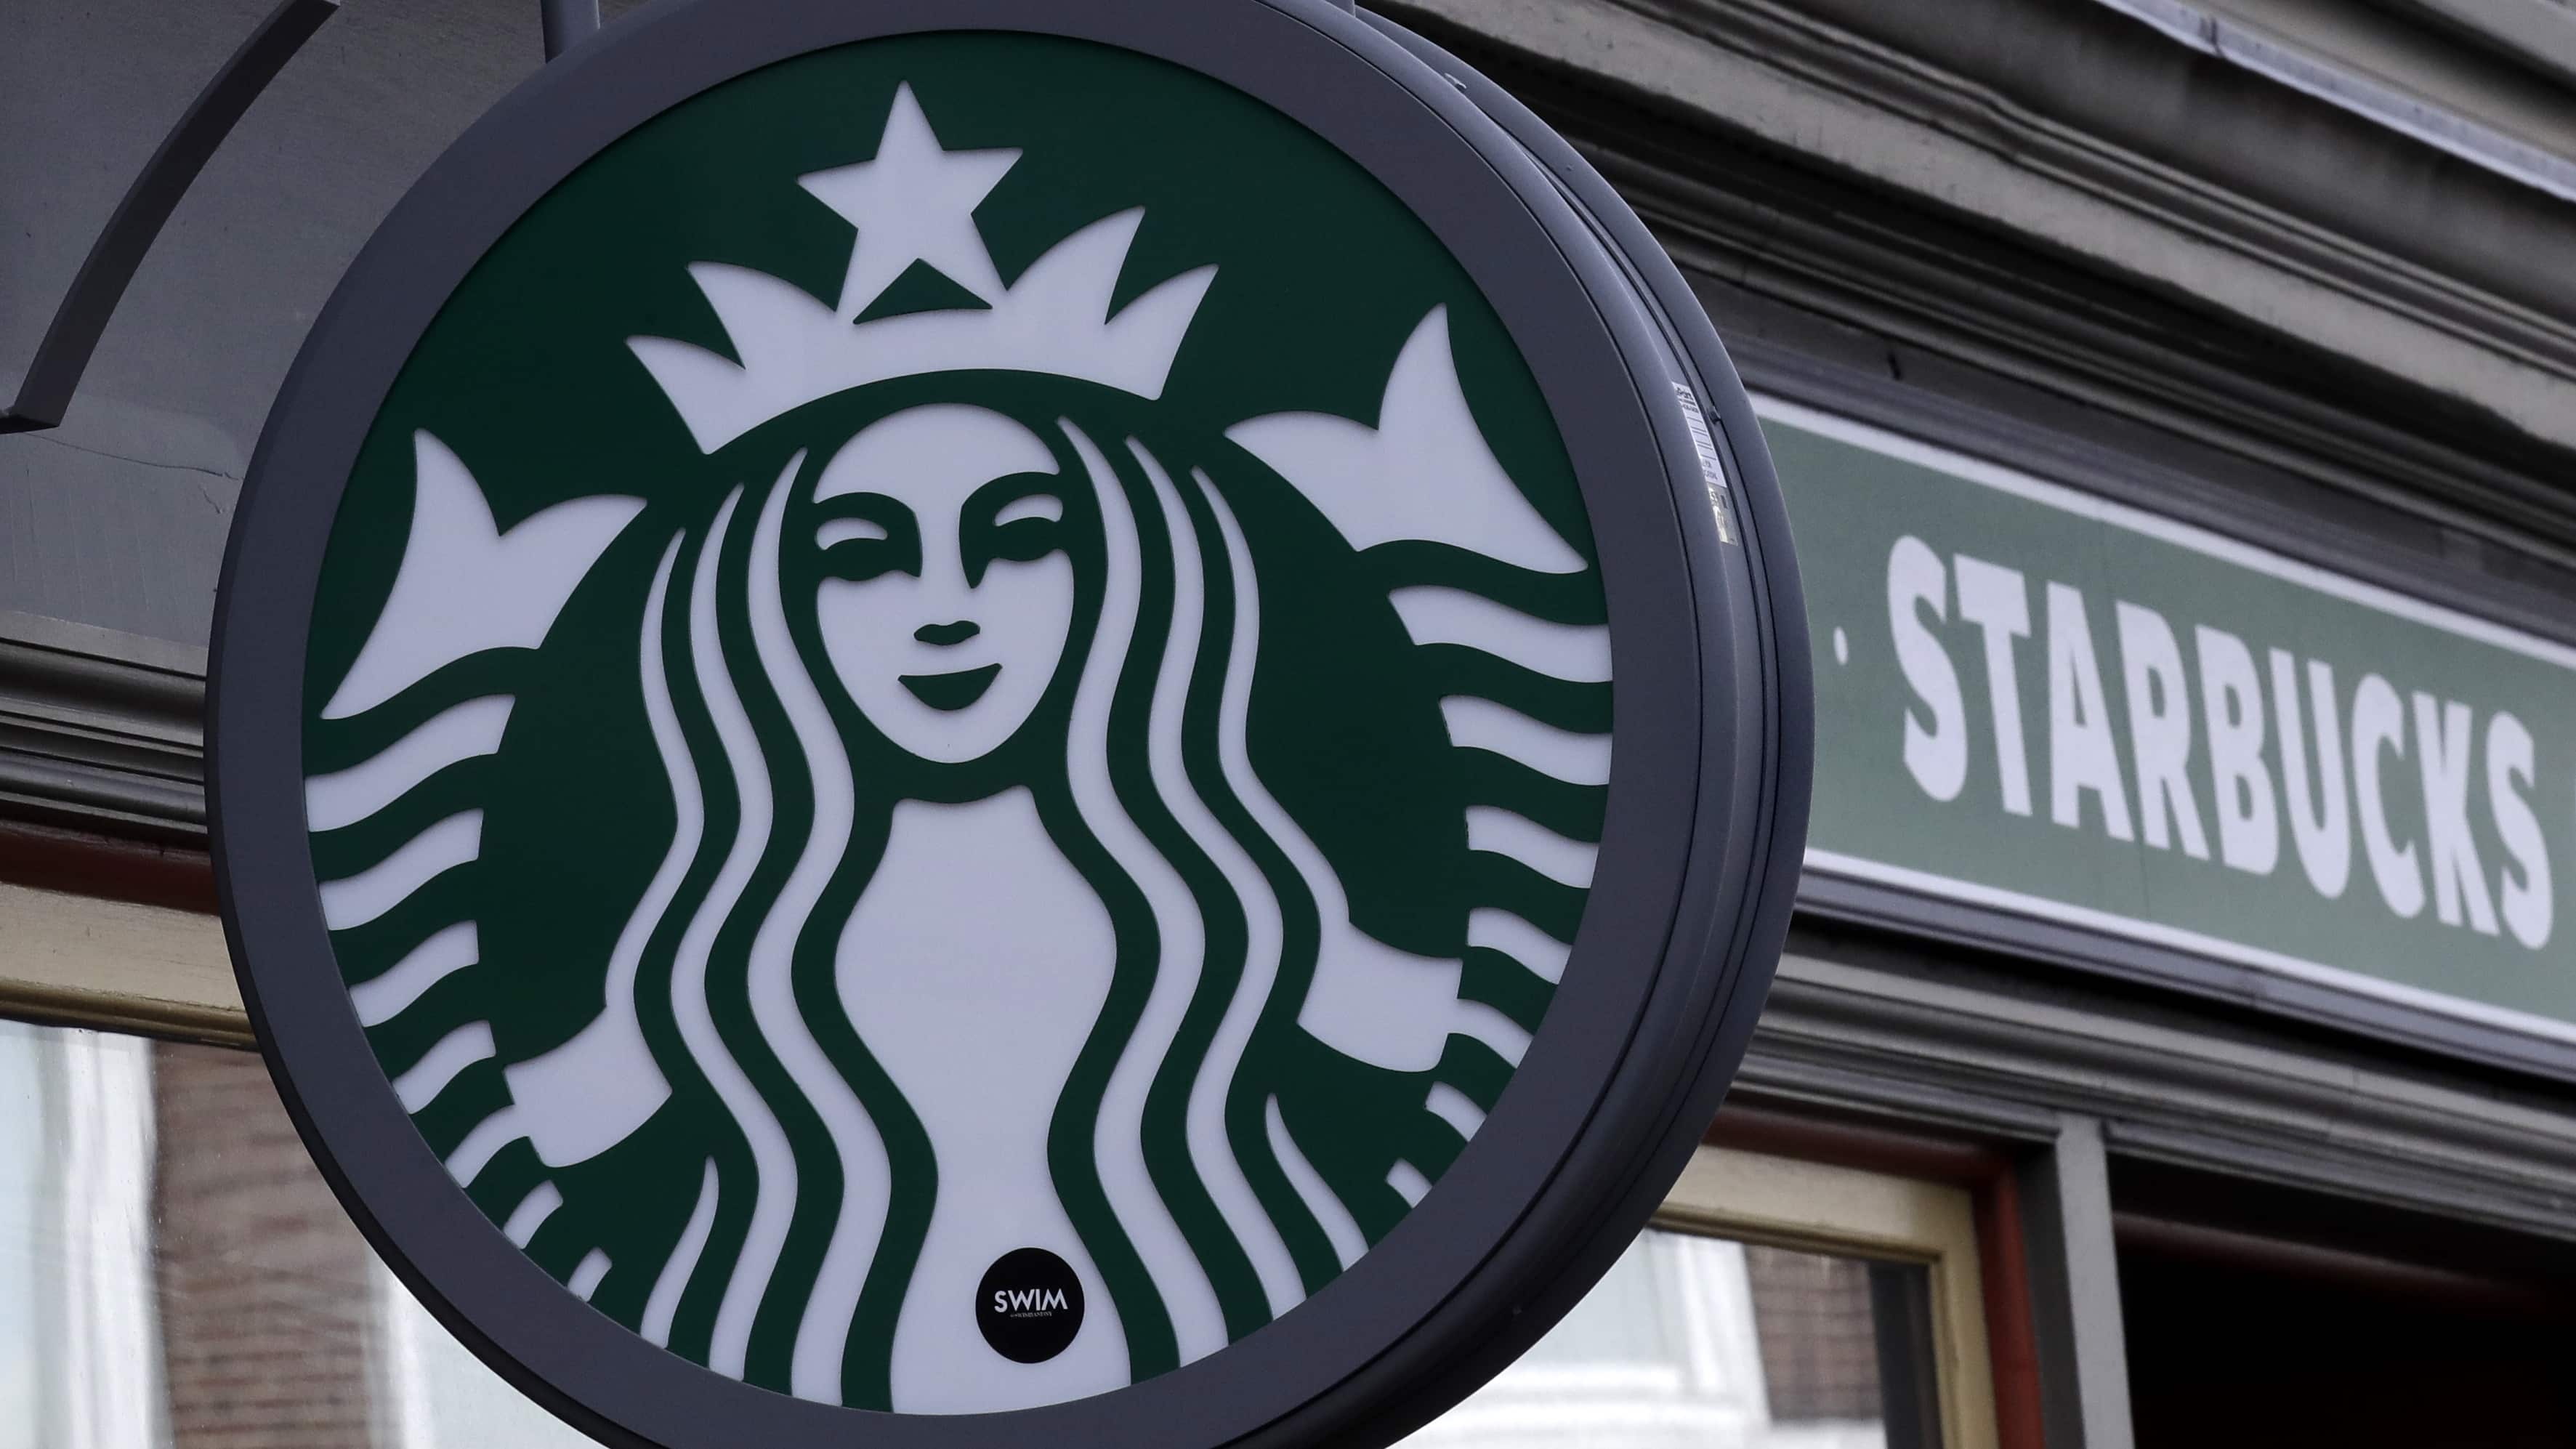 Arizona Police Officers Claim They Were Asked To Leave Starbucks; Starbucks Later Issues Apology